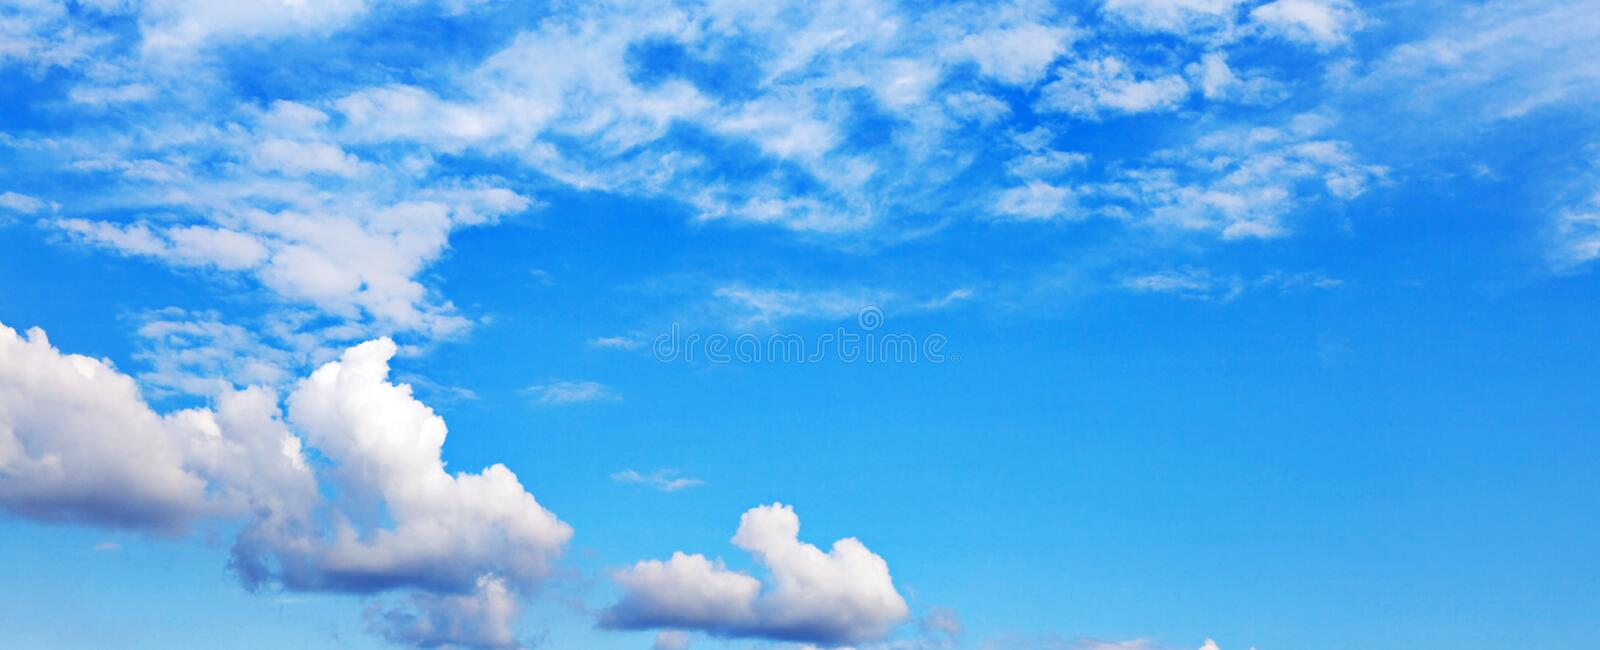 Download Bright blue sky stock photo. Image of cloudy, fleecy - 12101944